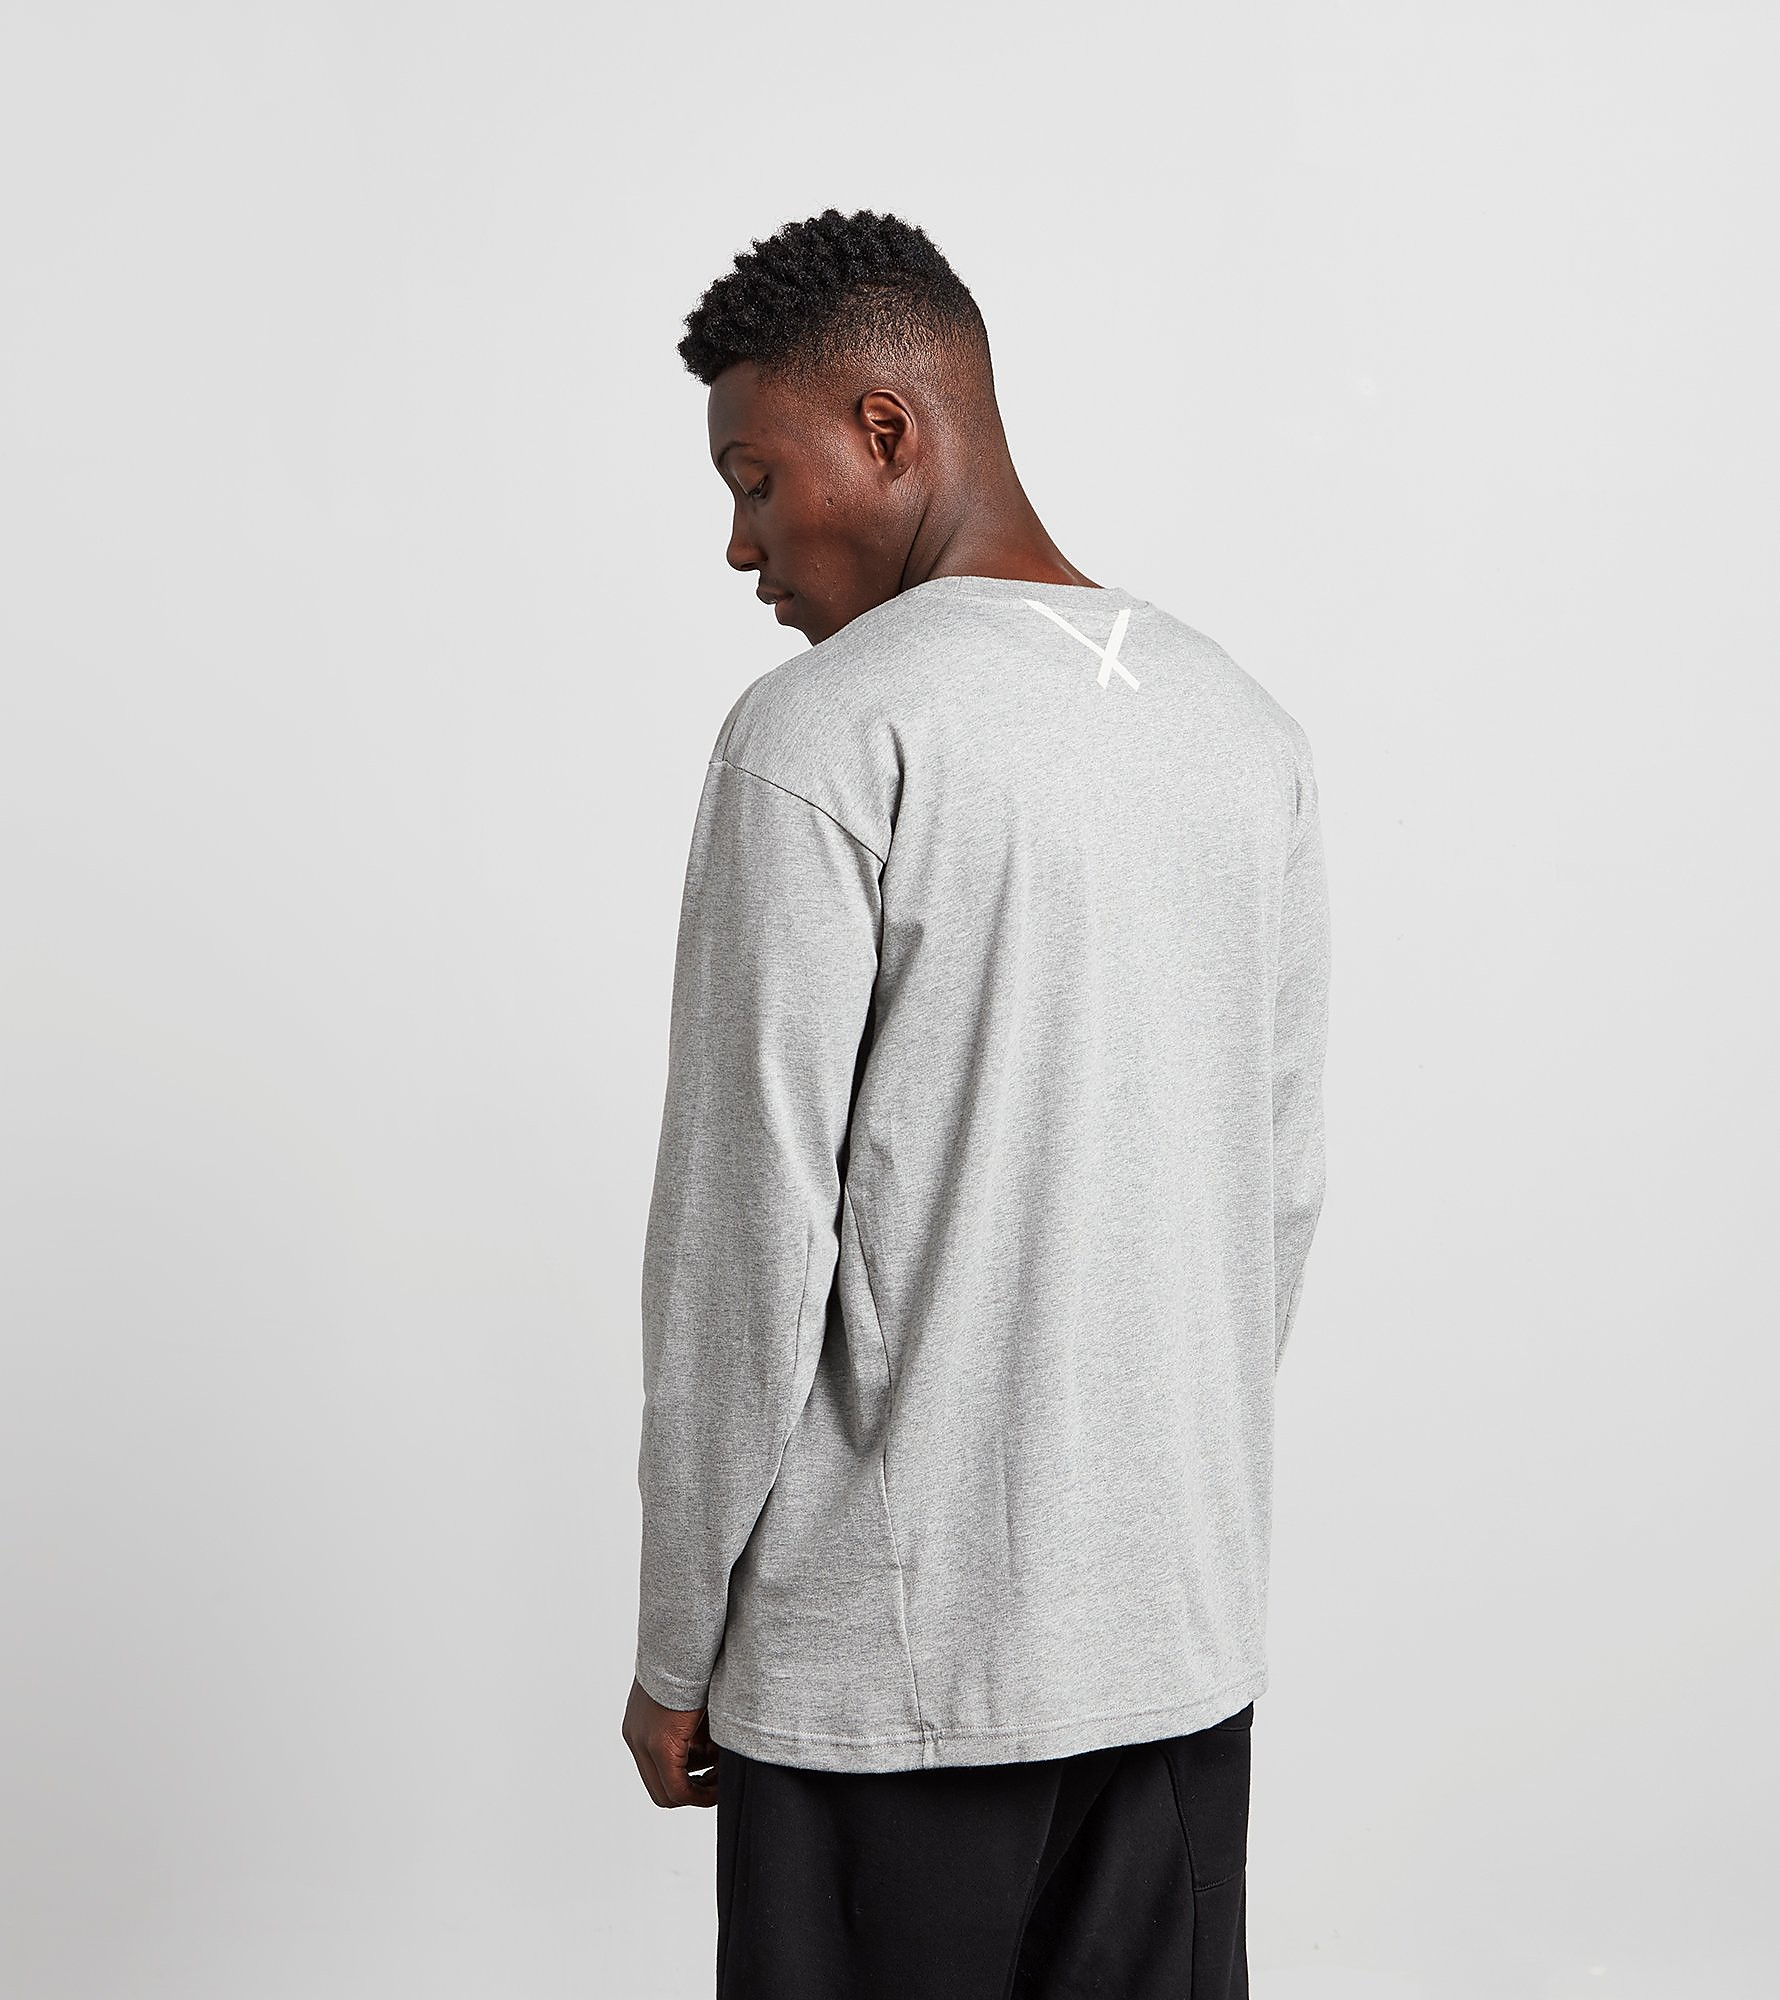 adidas Originals XBYO Long-Sleeved T-Shirt